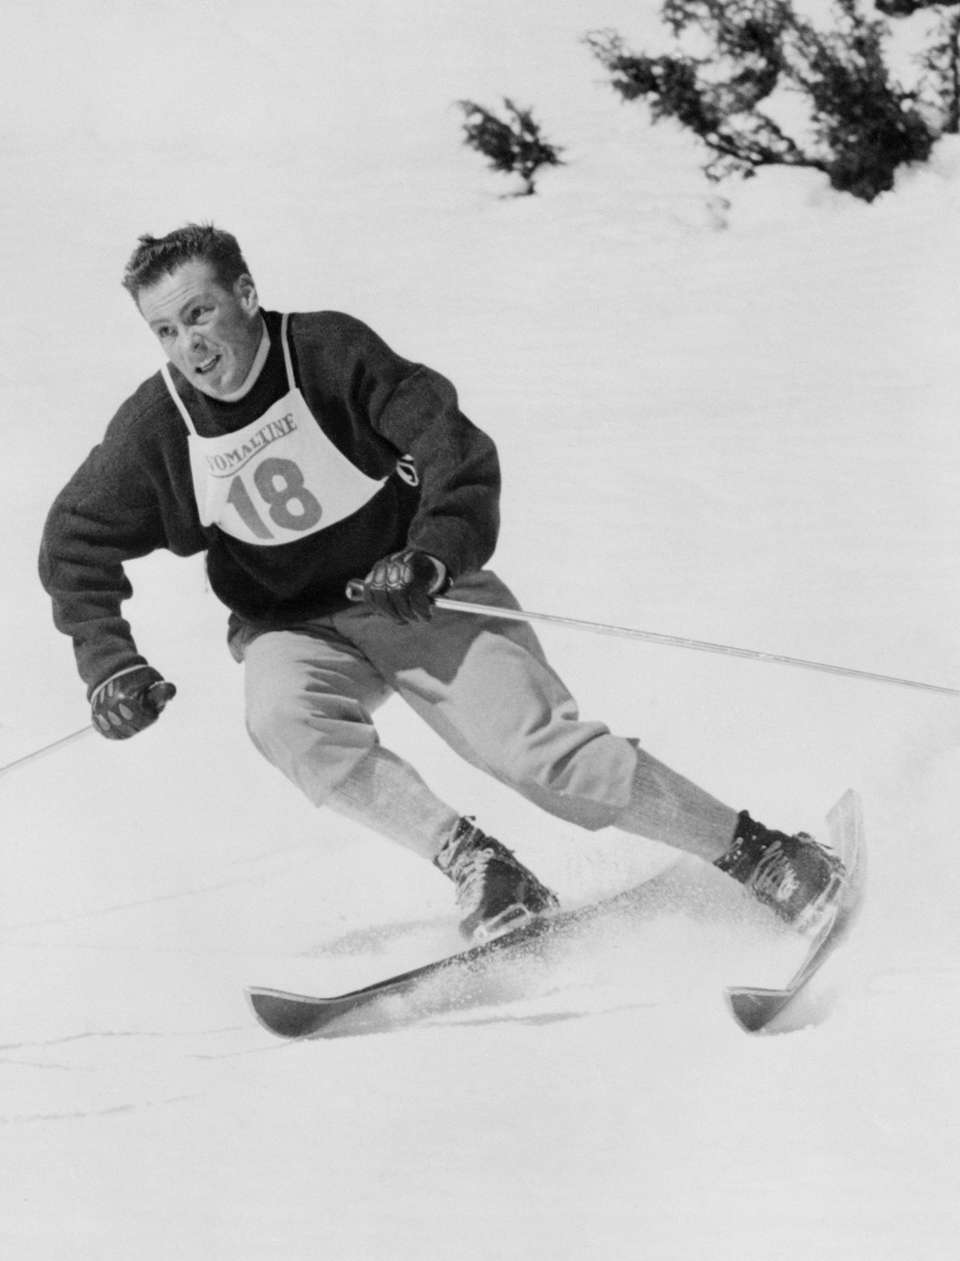 Olympic skiing champion Jean Vuarnet, who helped pioneer